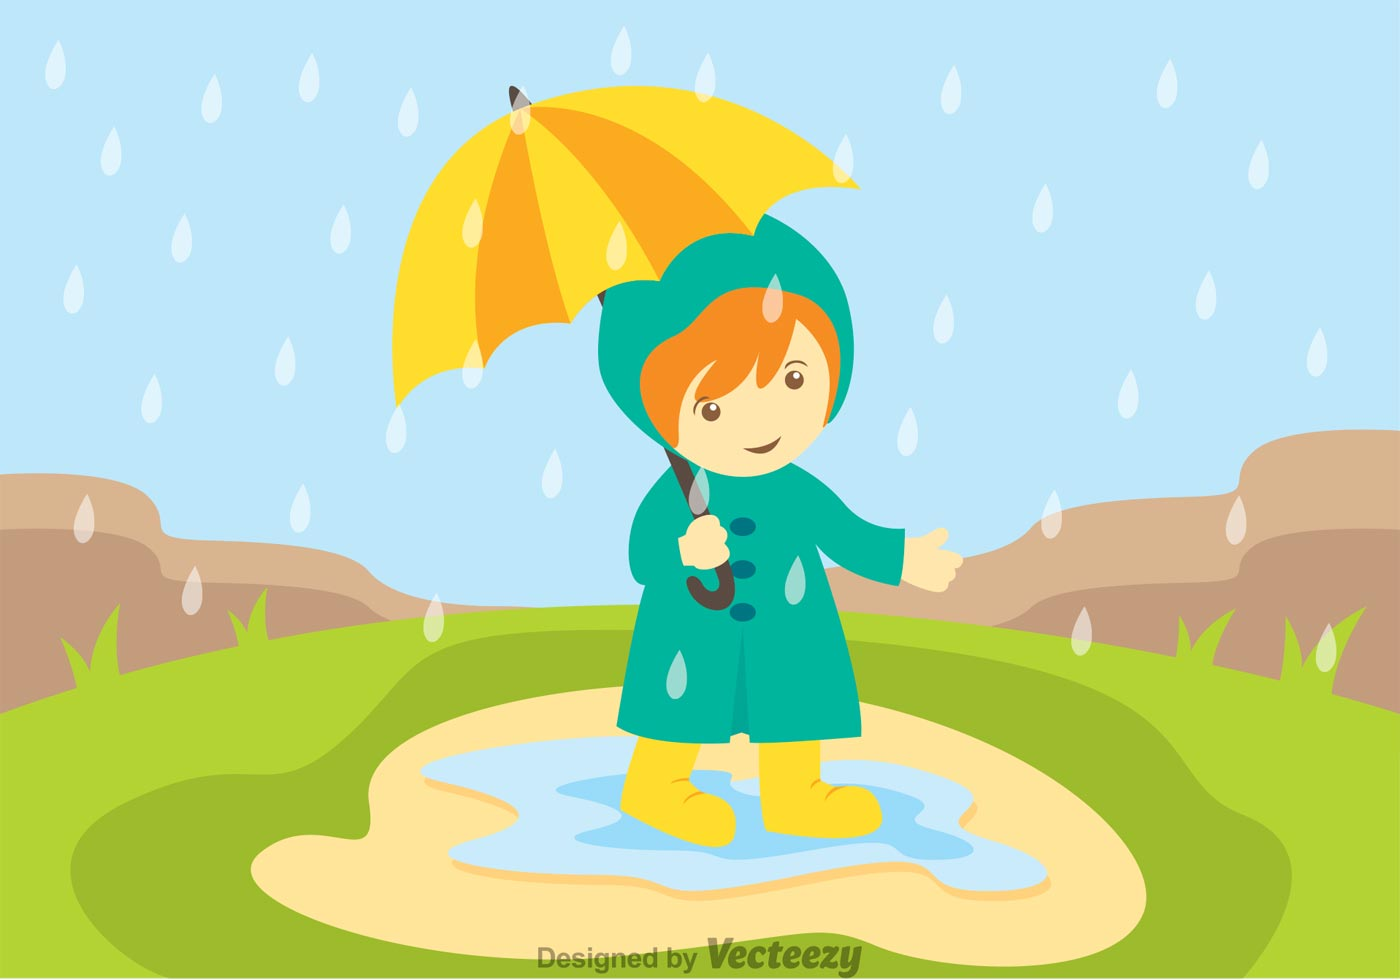 Flat Boots Girl Wallpaper Little Girl In Spring Showers Download Free Vector Art